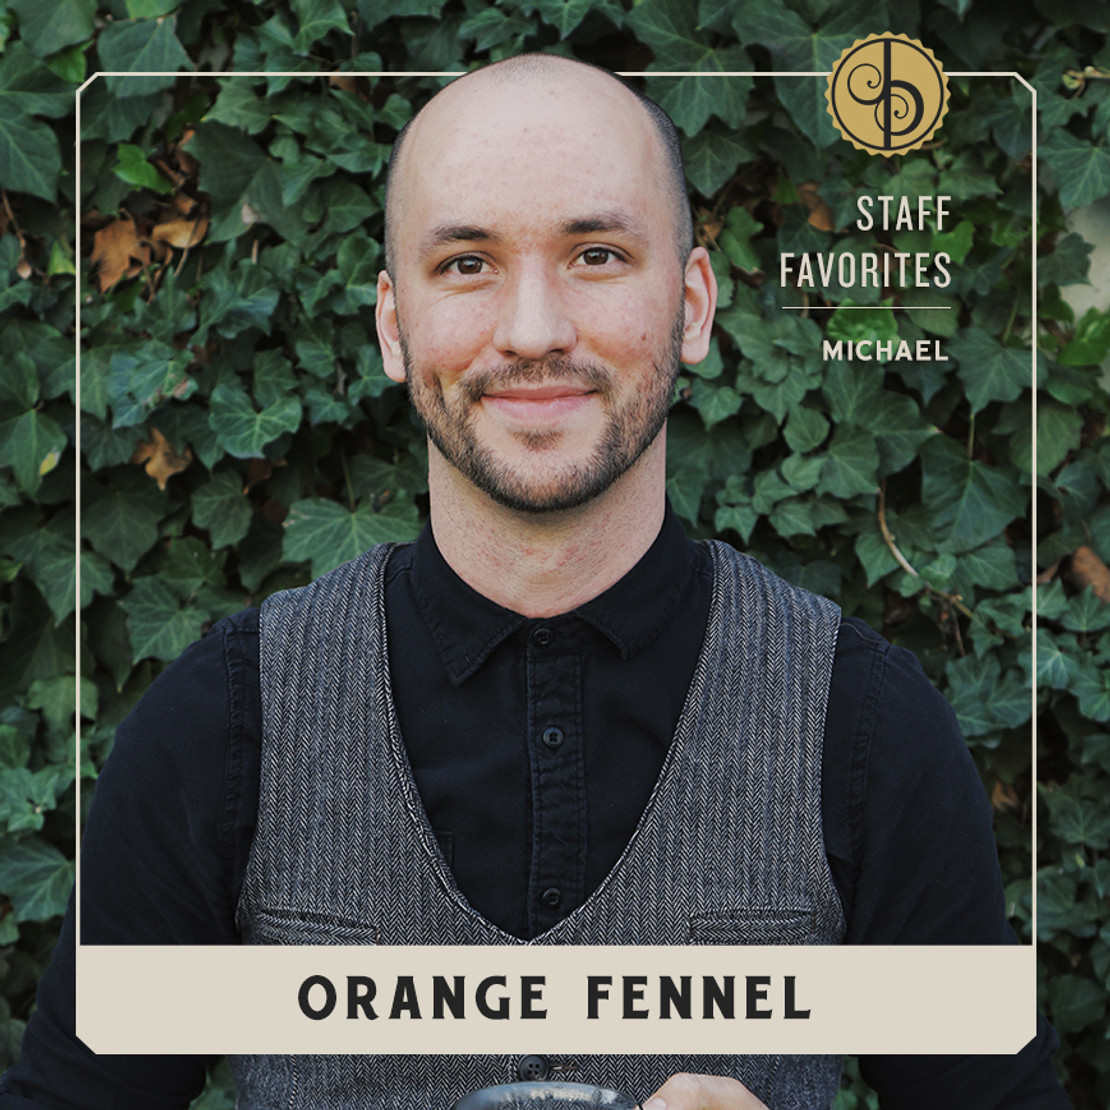 Staff Favorites: Michael & Orange Fennel